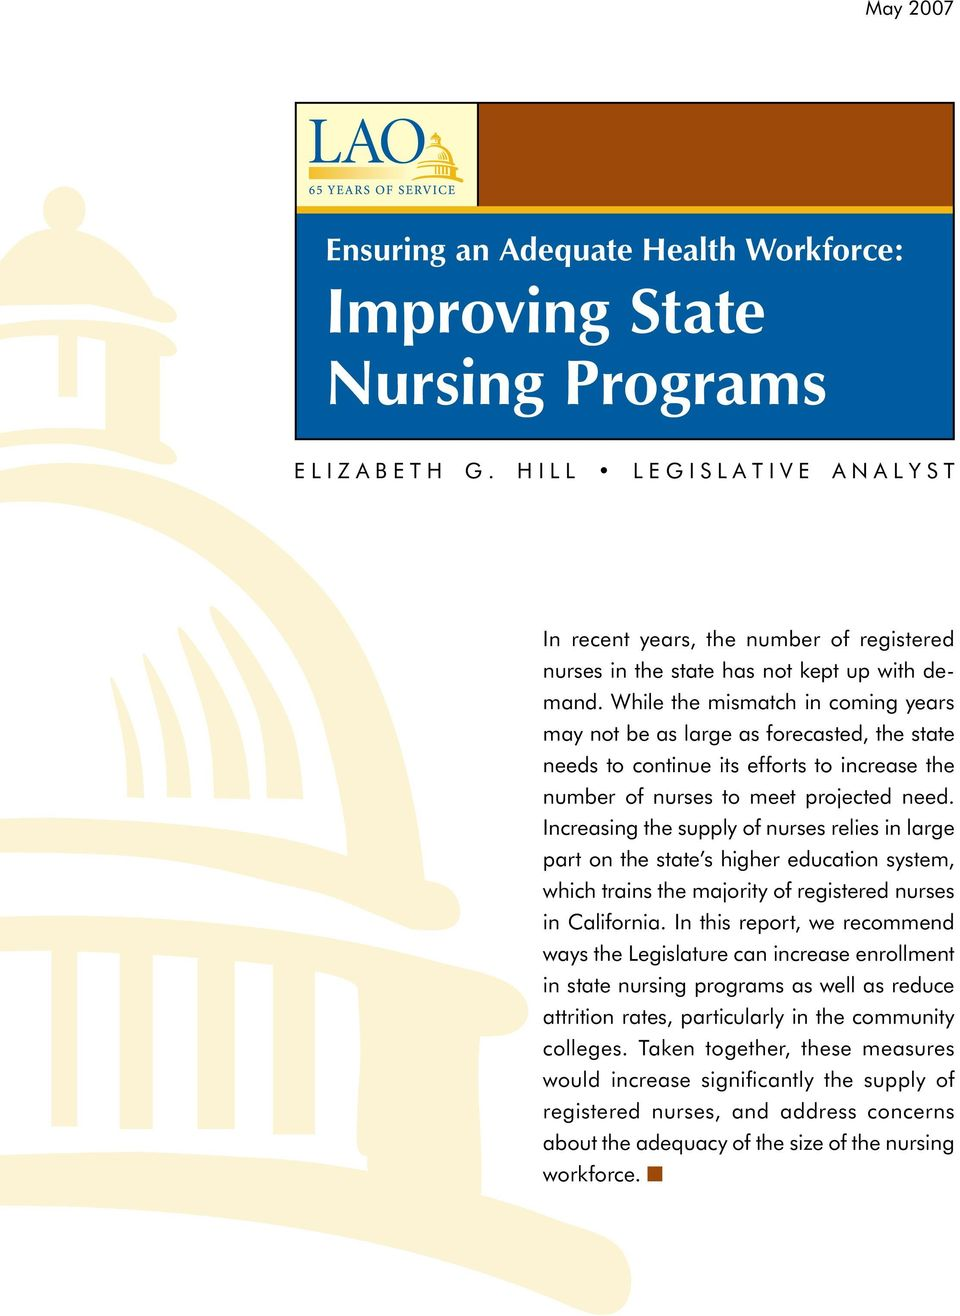 While the mismatch in coming years may not be as large as forecasted, the state needs to continue its efforts to increase the number of nurses to meet projected need.